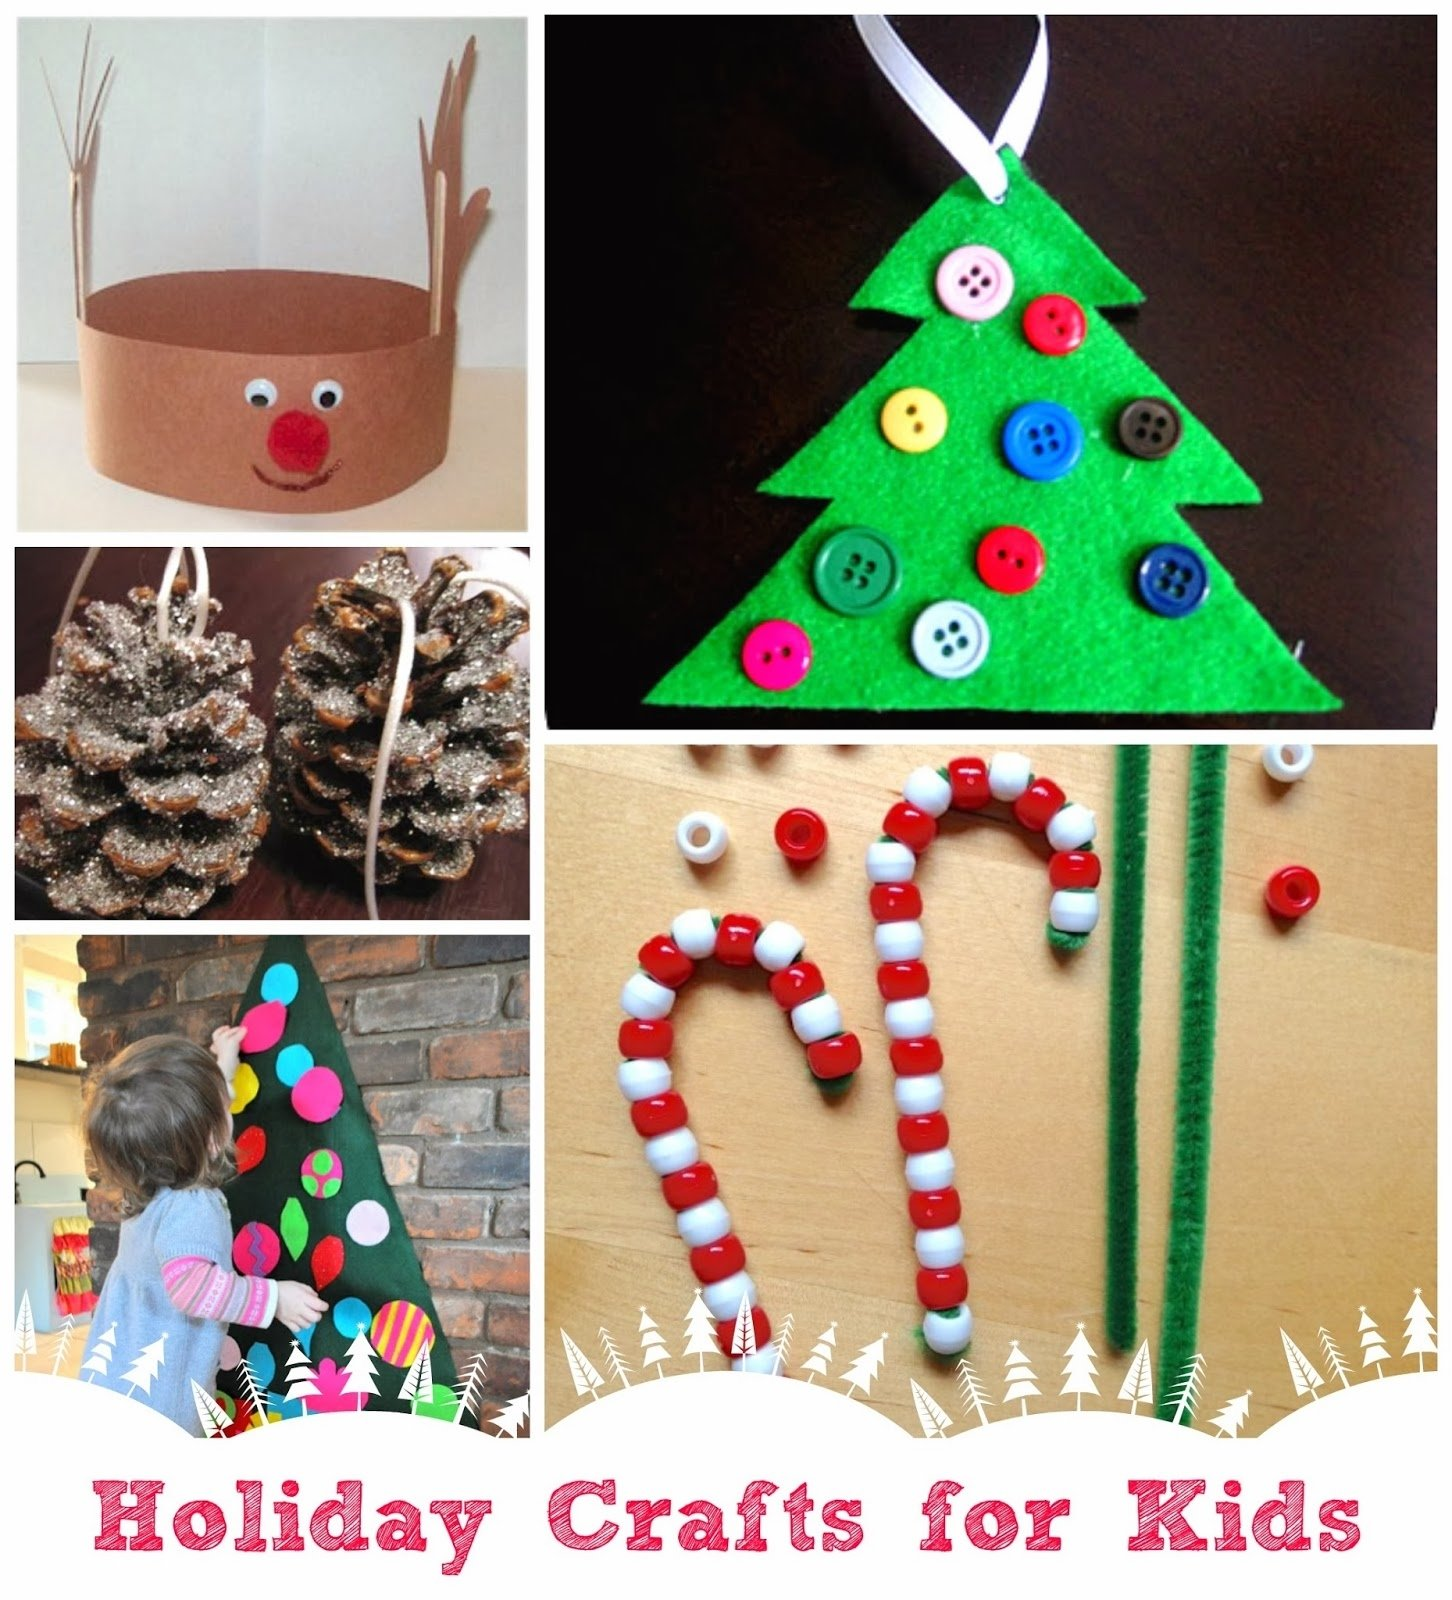 10 Gorgeous Christmas Ornament Craft Ideas For Kids parent talk matters blog holiday craft ideas for kids 2020